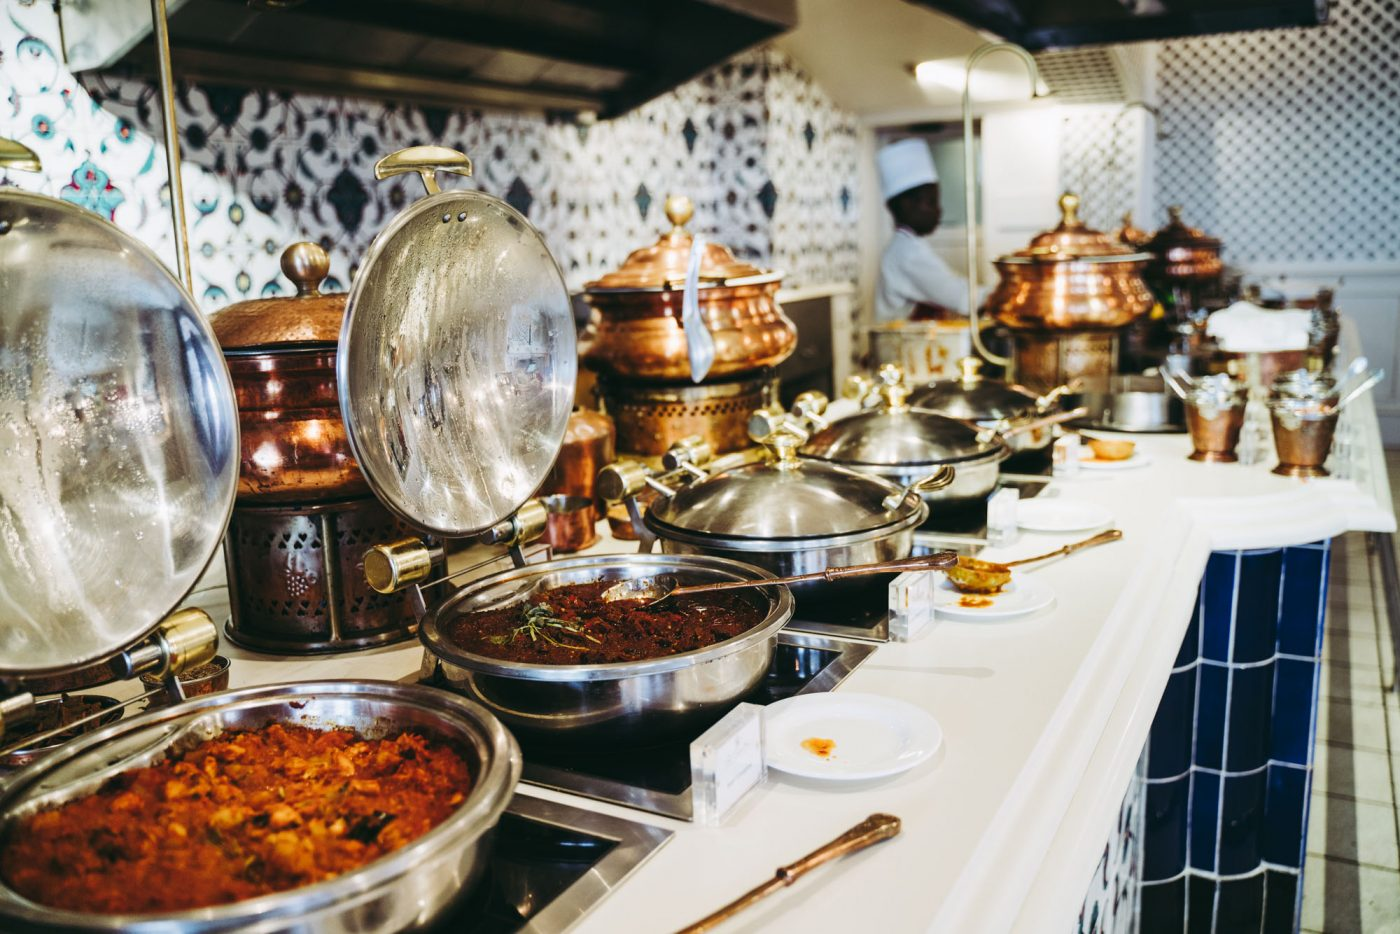 Curry buffet at the Oyster Box hotel in Durban, South Africa